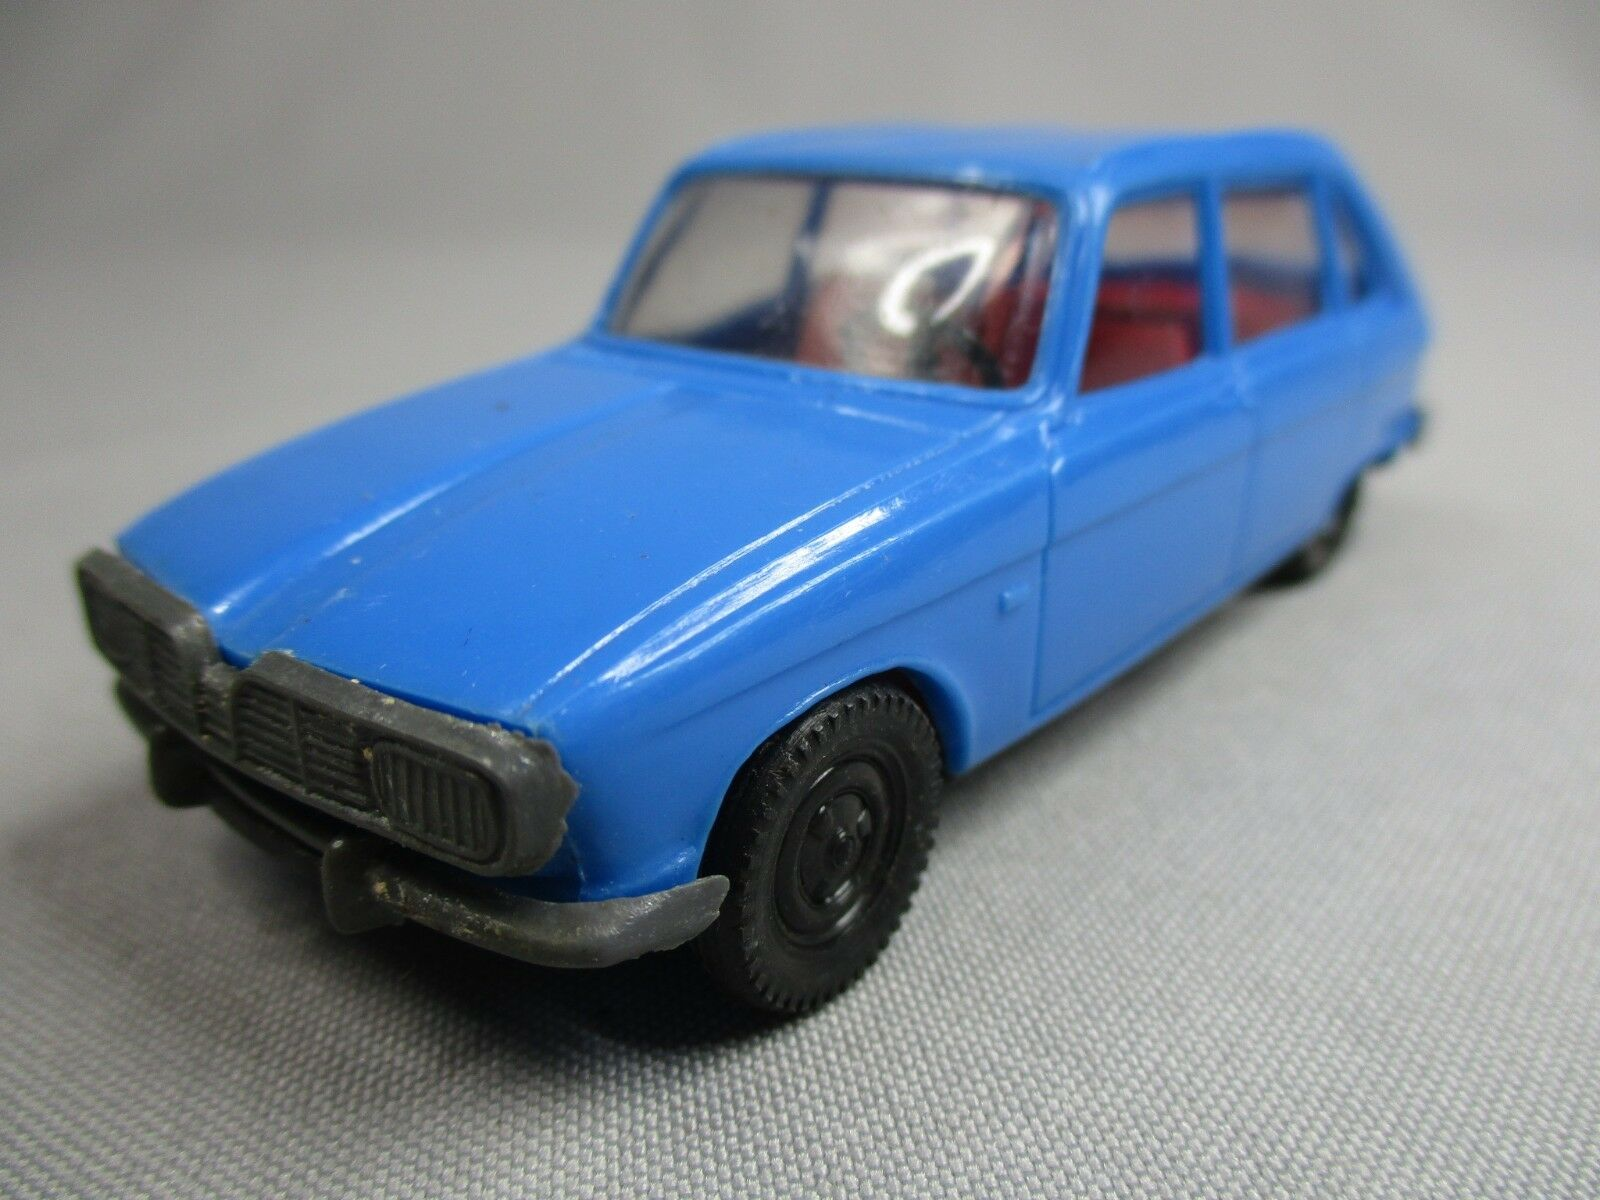 AI149 INJECTAPLASTIC RENAULT 16 R16 blueE 1 43